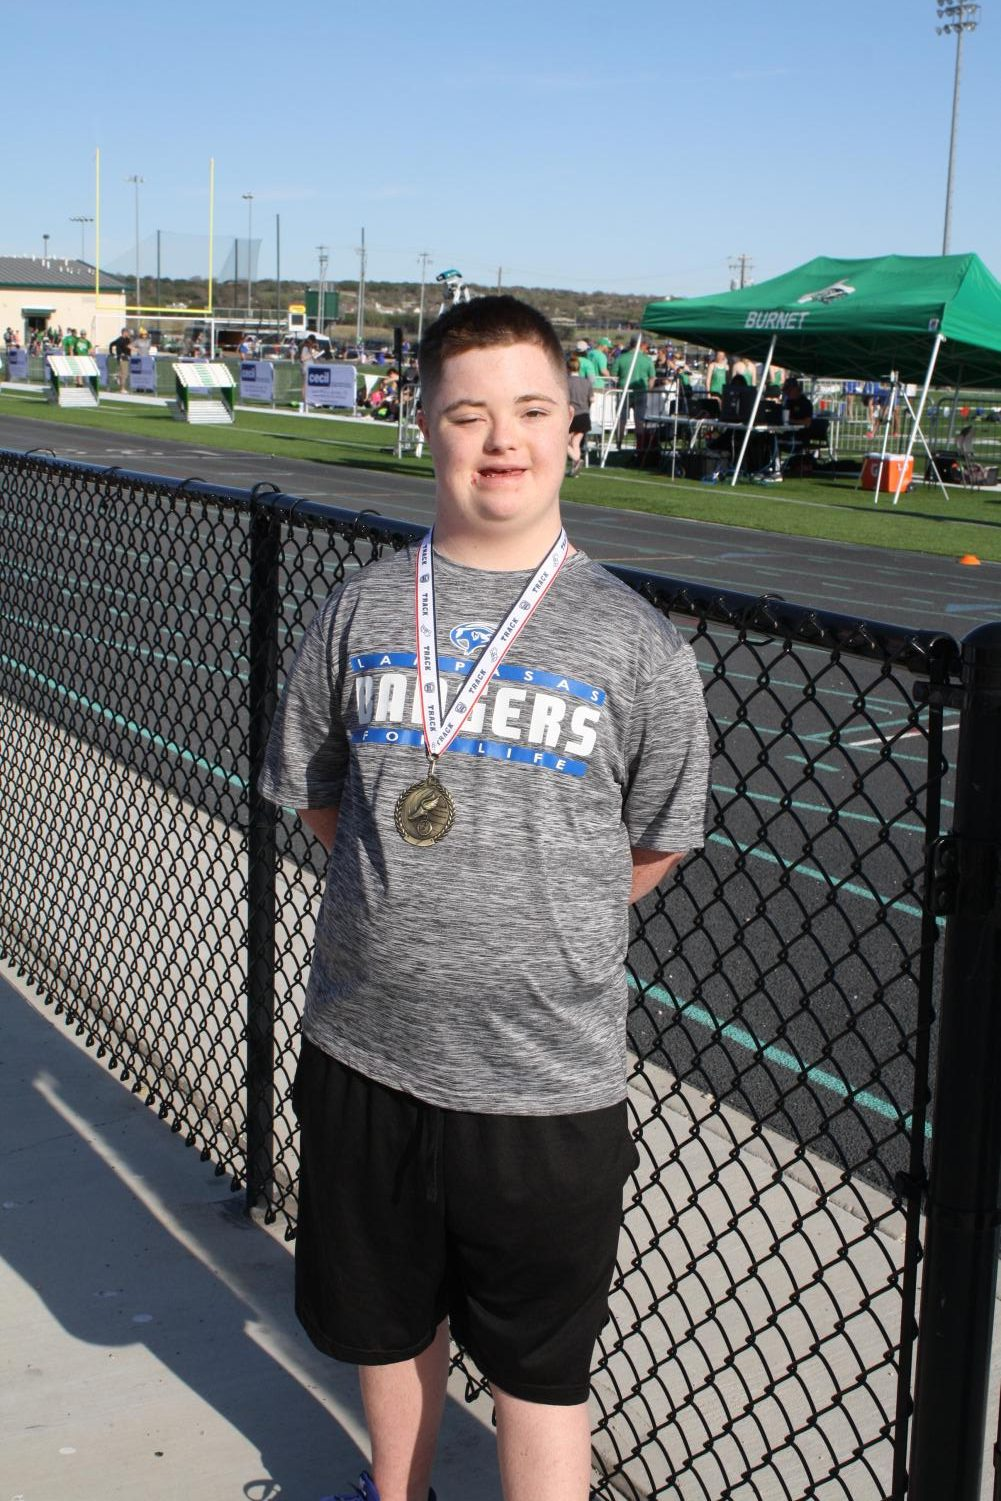 Life skills student Phillip Hallahan smiles with his medal after running   The Hundred Meter Special Race at the Burnet track meet on March 21.